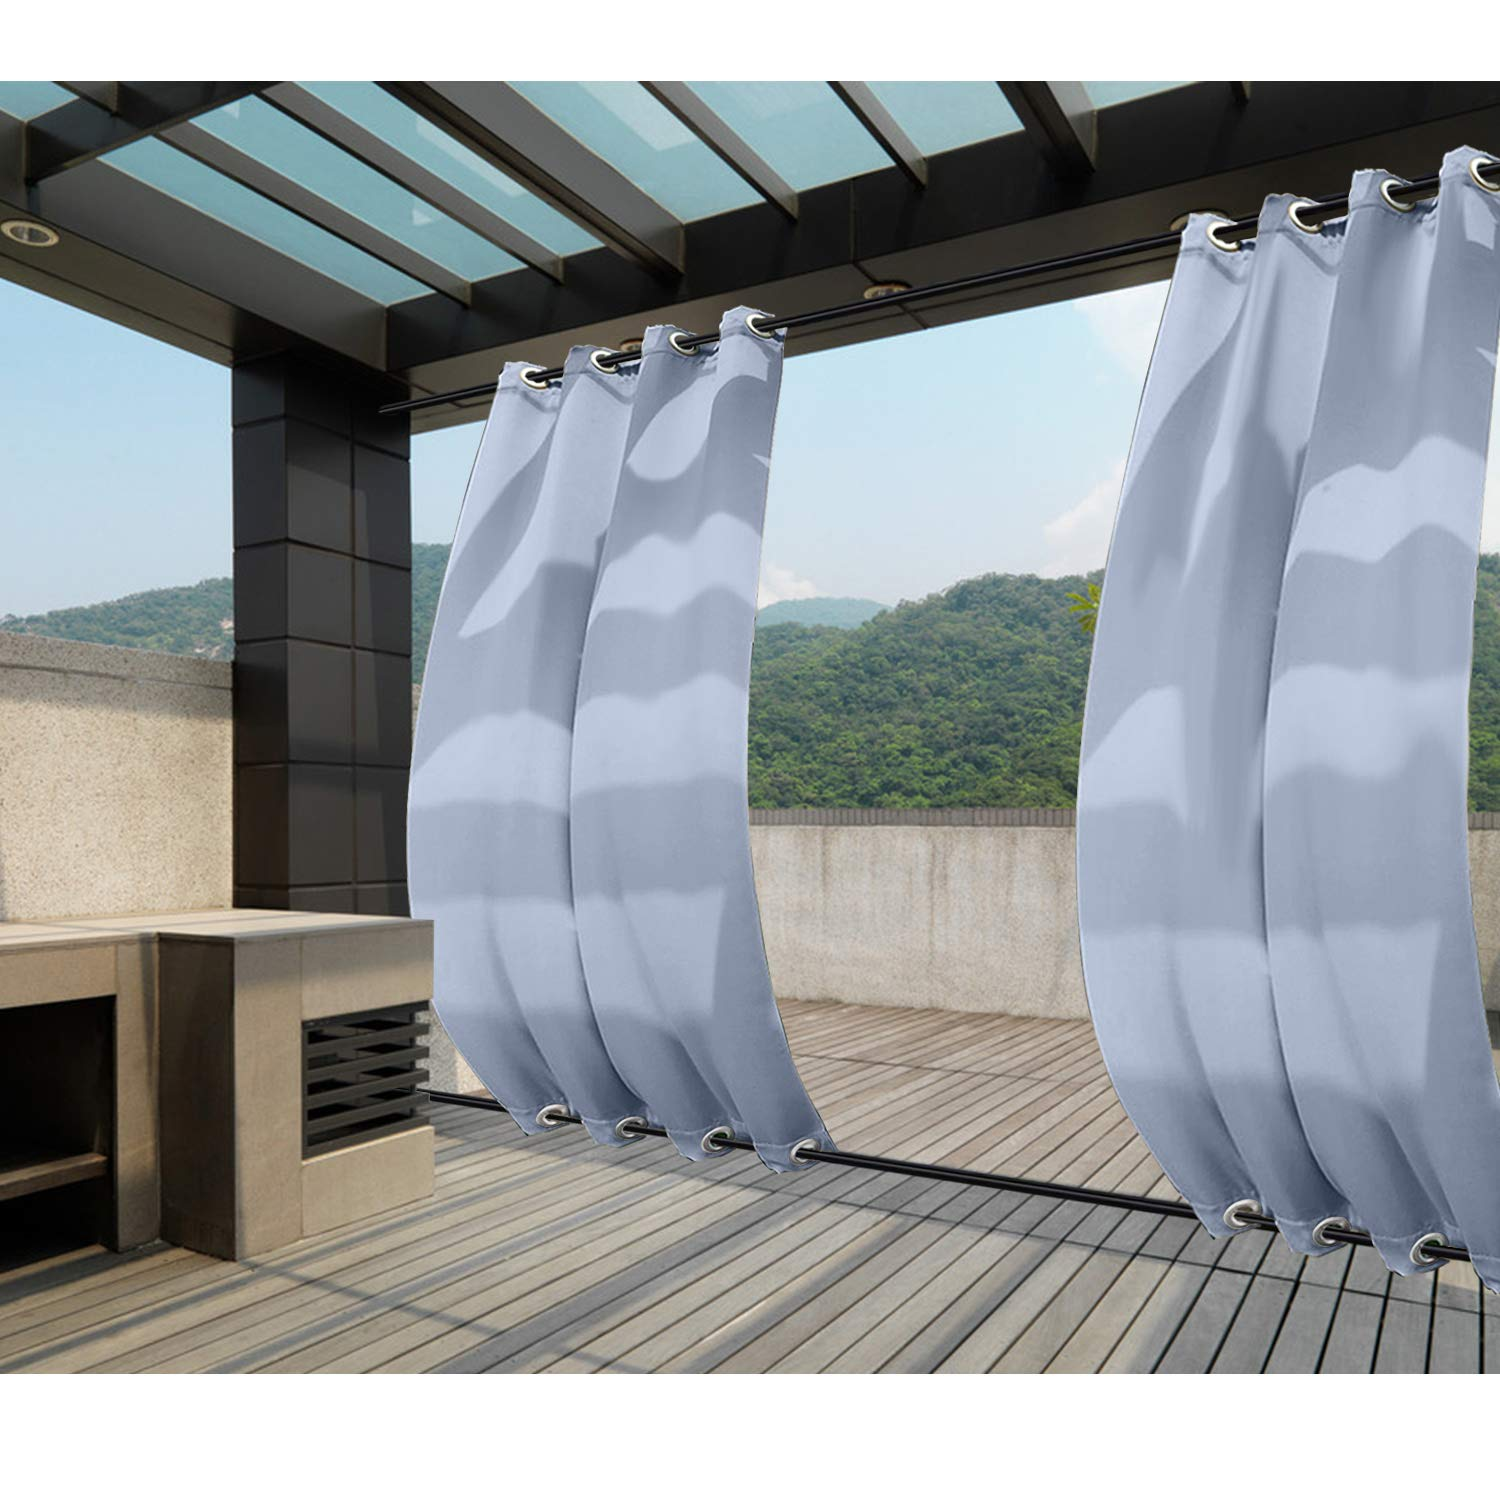 Macochico Windproof Curtains Grommet at Top and Bottom Sky Blue Outdoor Blackout Drapes Water Repellent for Cabana Gazebo Pergola Porch Noise Reducing Heat Insulated 84W x 84L (1 Panel)